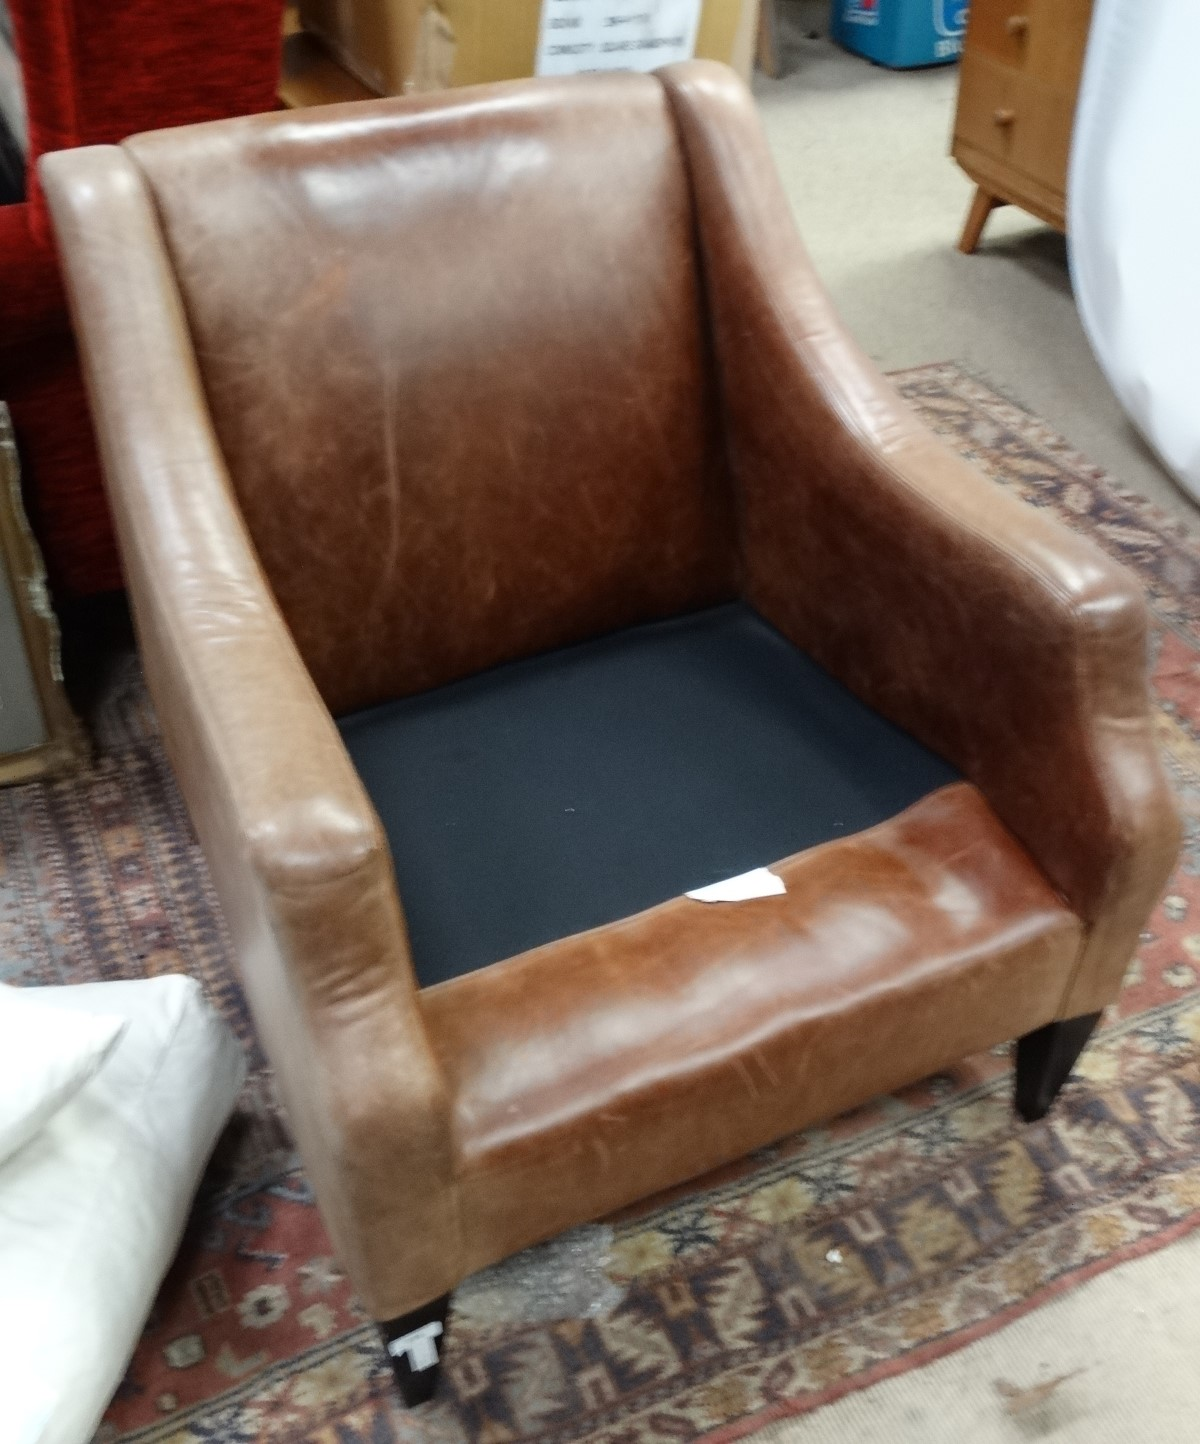 Lot 58 - Leather chair CONDITION: Please Note - we do not make reference to the condition of